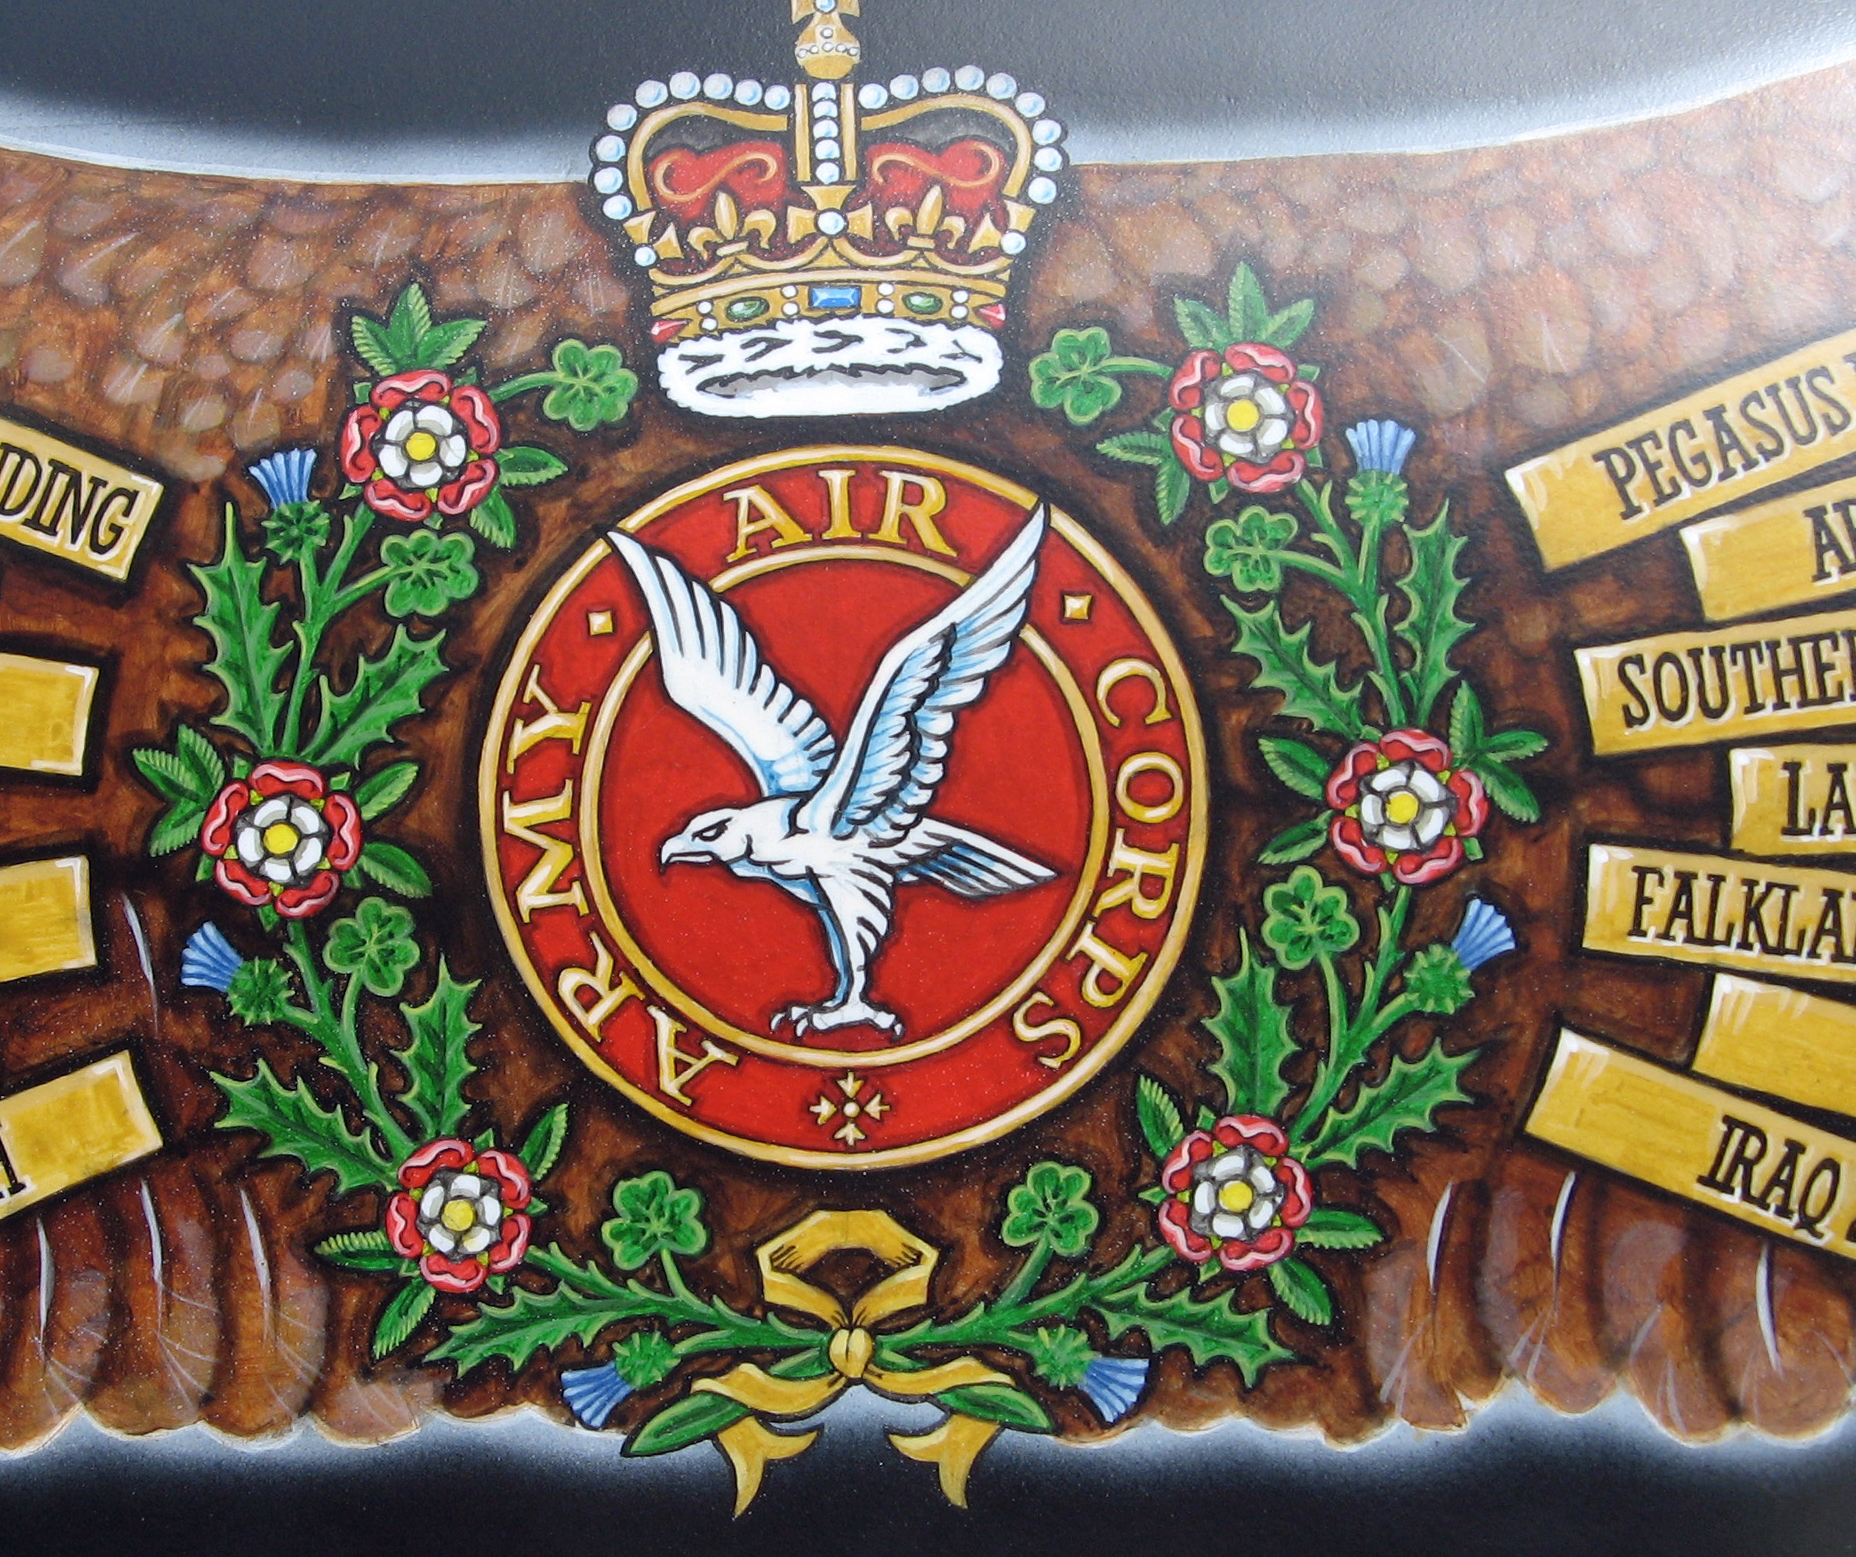 9 Regiment Army Air Corps - Military Art - Gentleman's Military ...